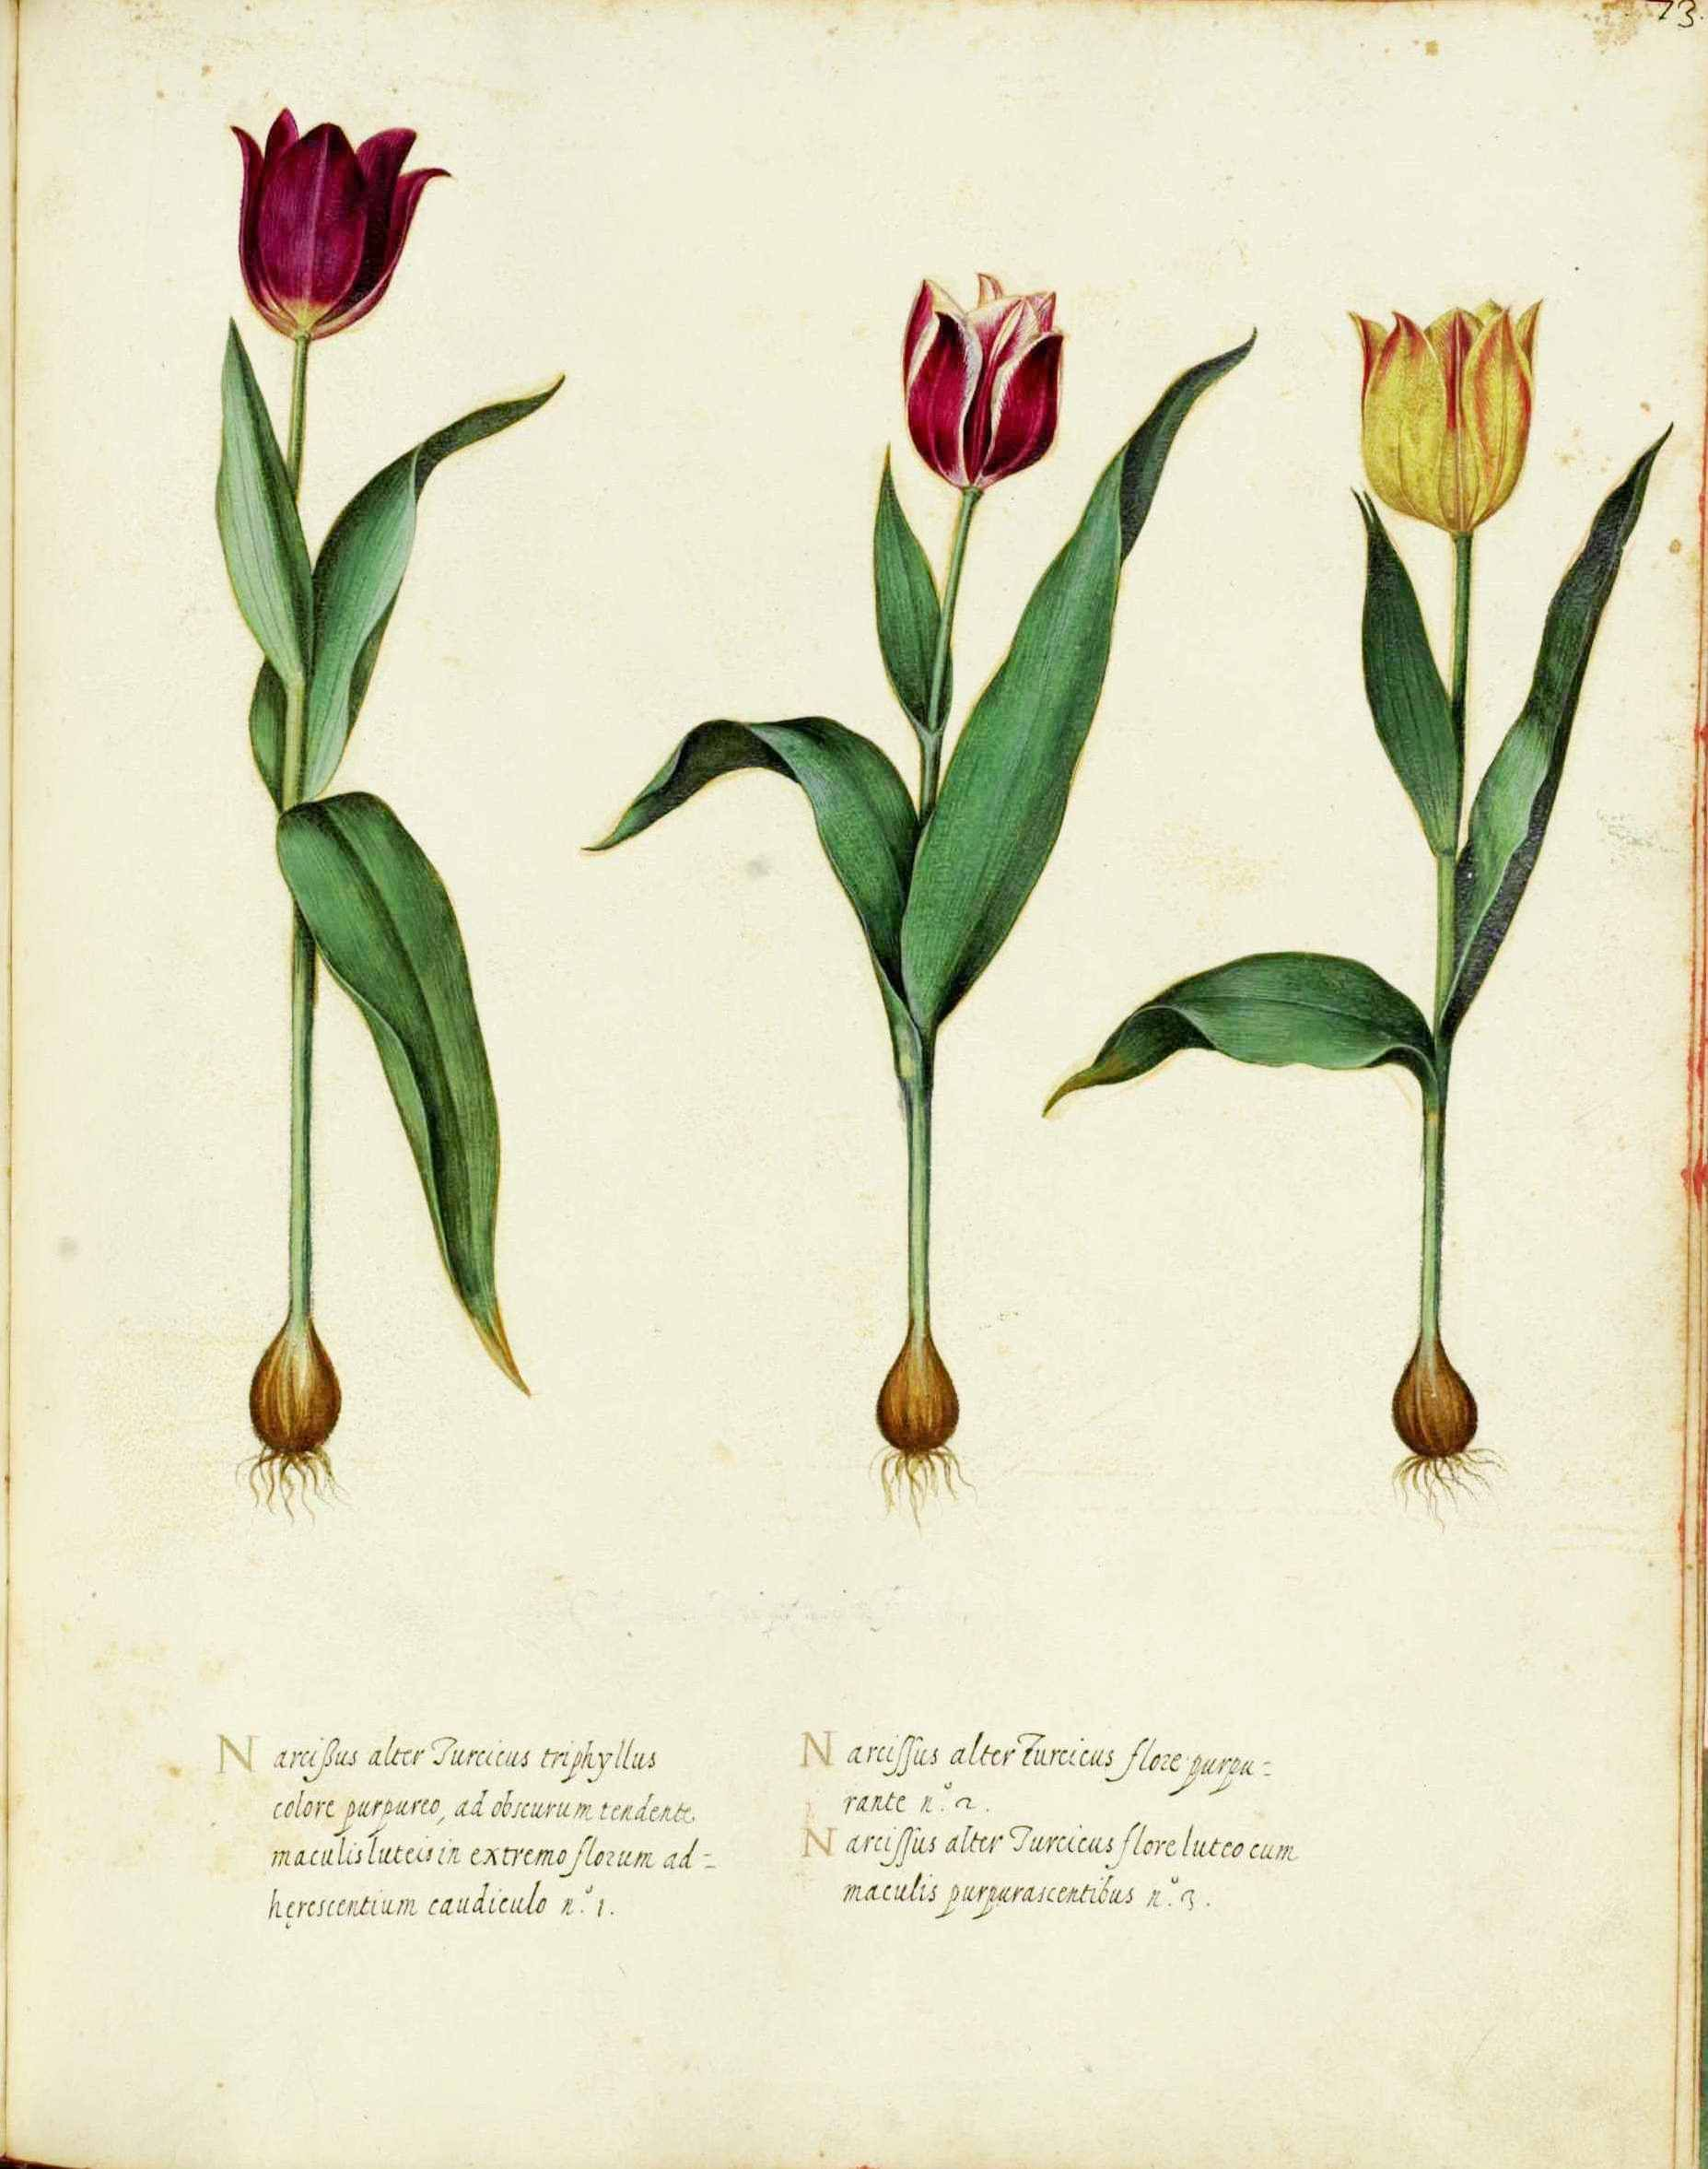 Pin By Amber Mae Bailey On Floral Tattoos Botanical Prints Free Tulips Art Botanical Flowers